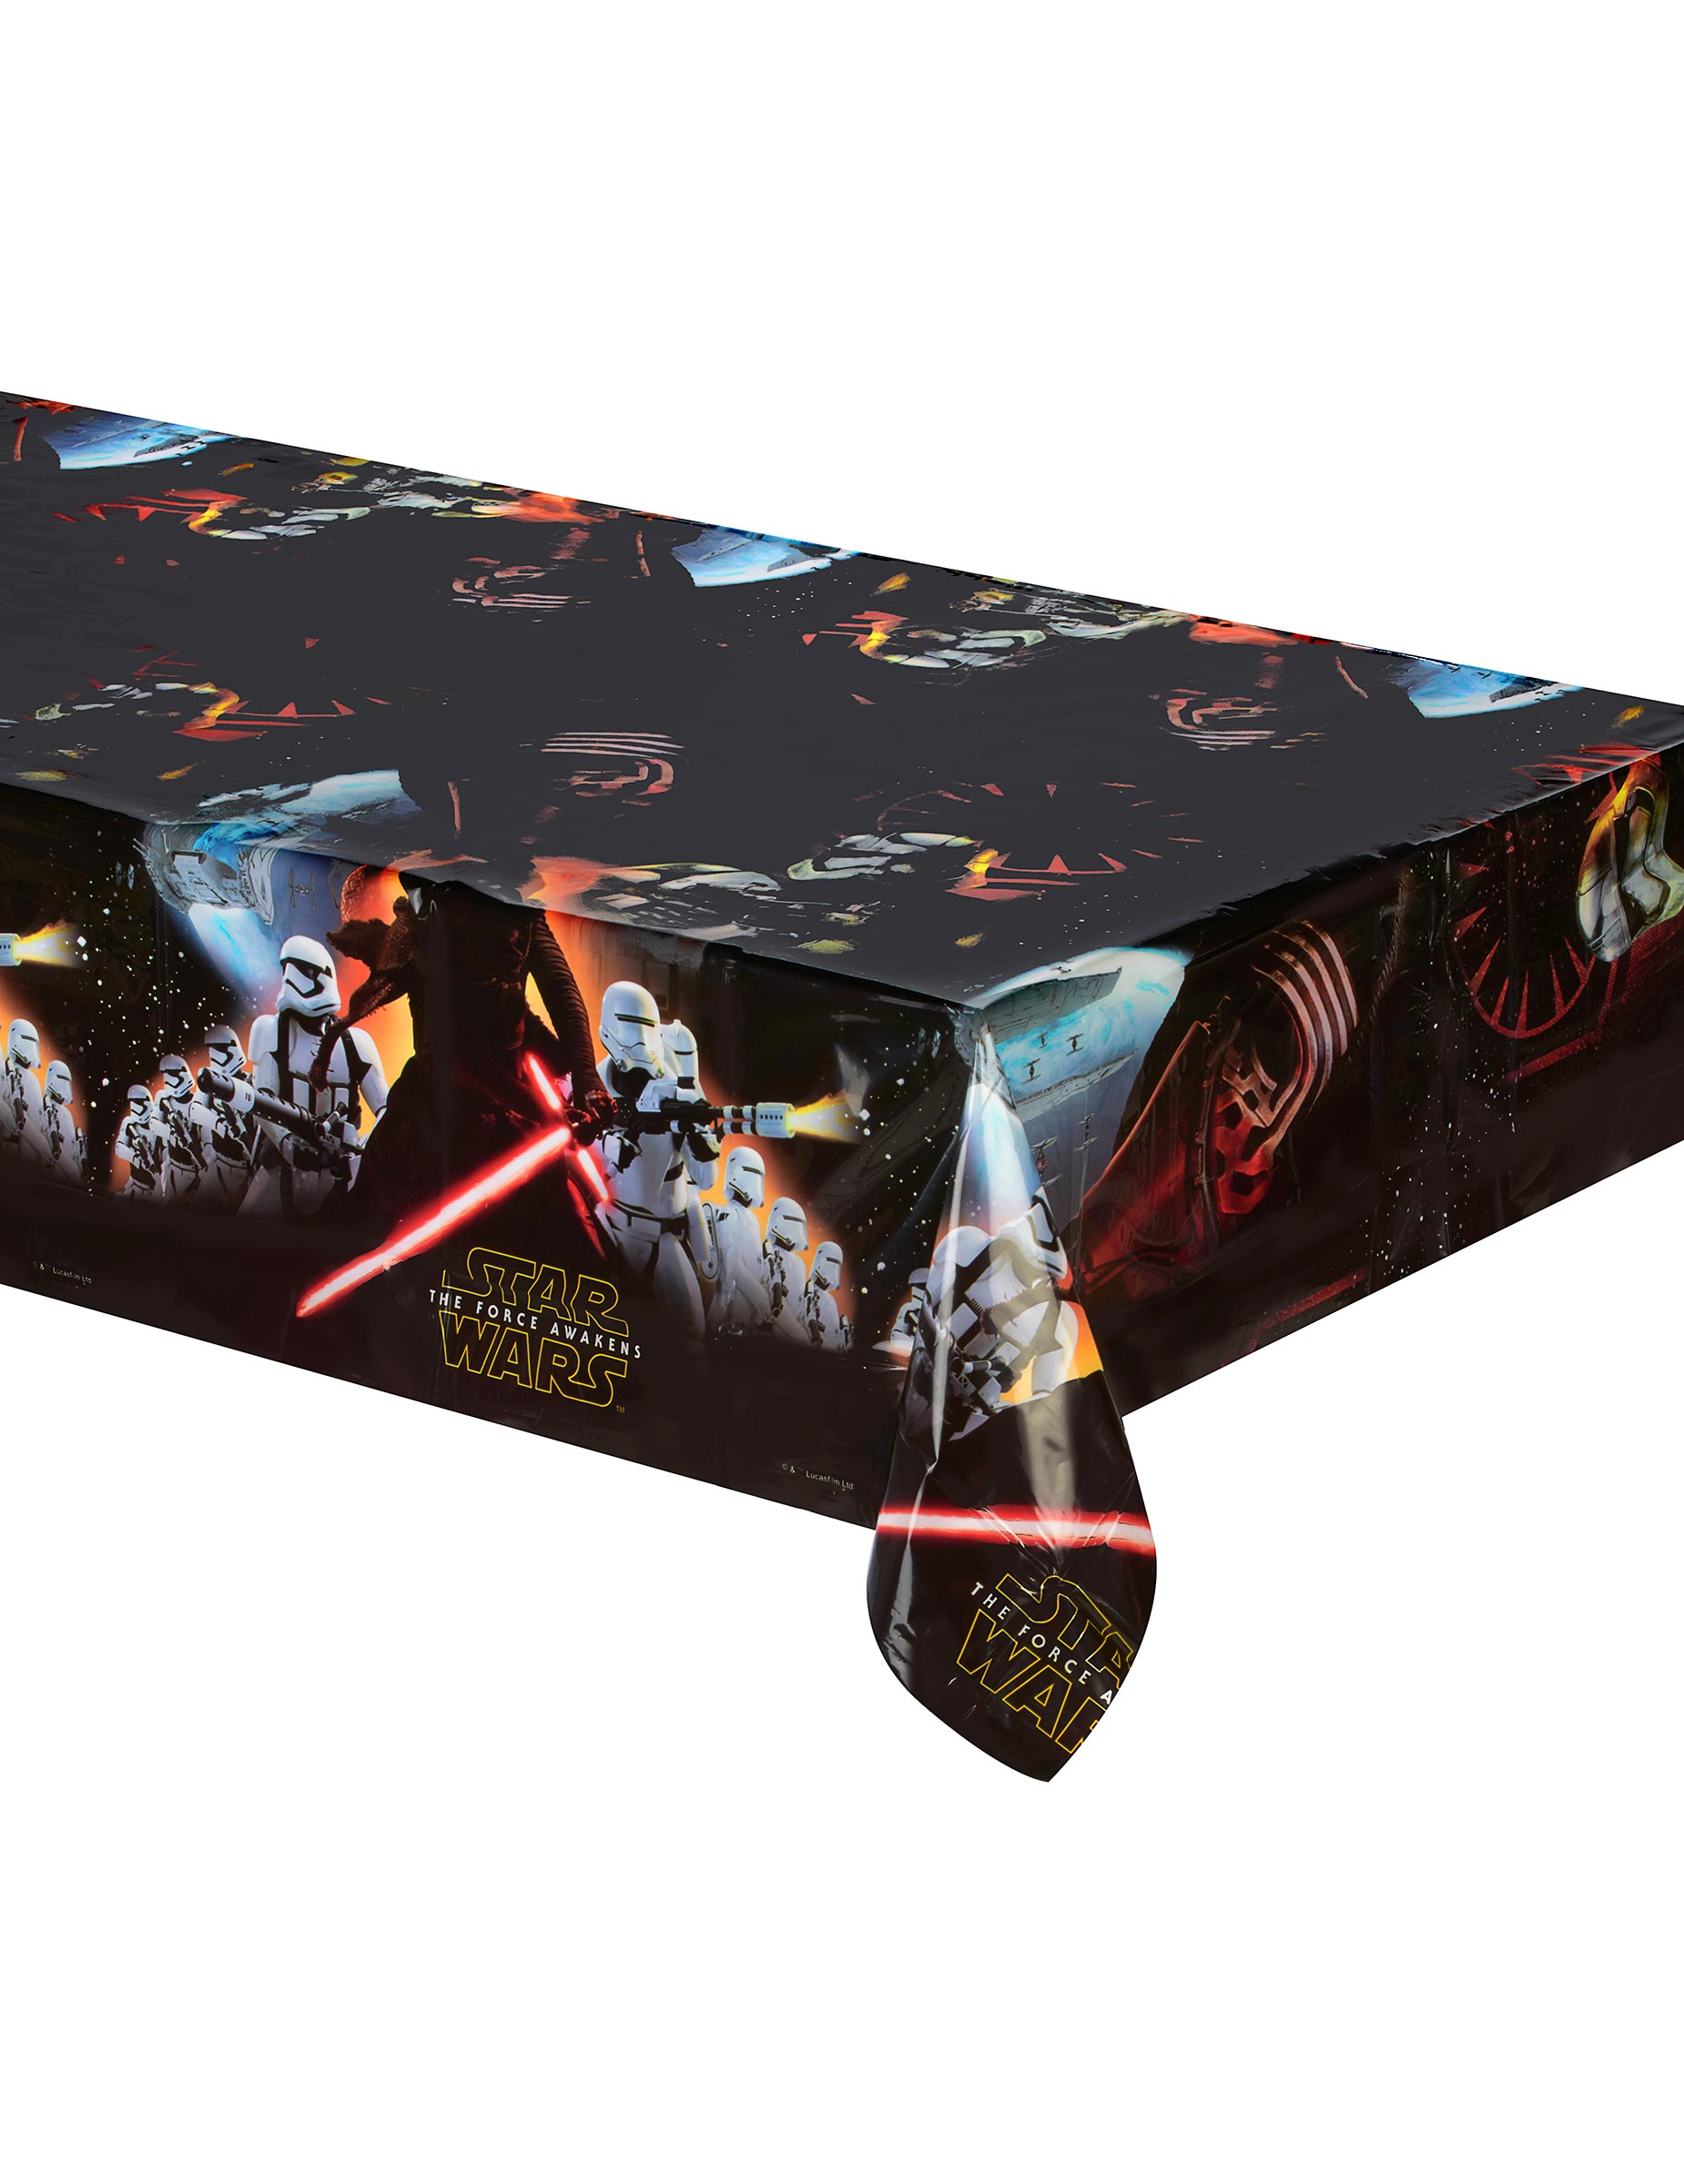 tischdecke star wars lizenzartikel vii kunststoff mehrfahrbig 120 x 180 cm g nstige faschings. Black Bedroom Furniture Sets. Home Design Ideas